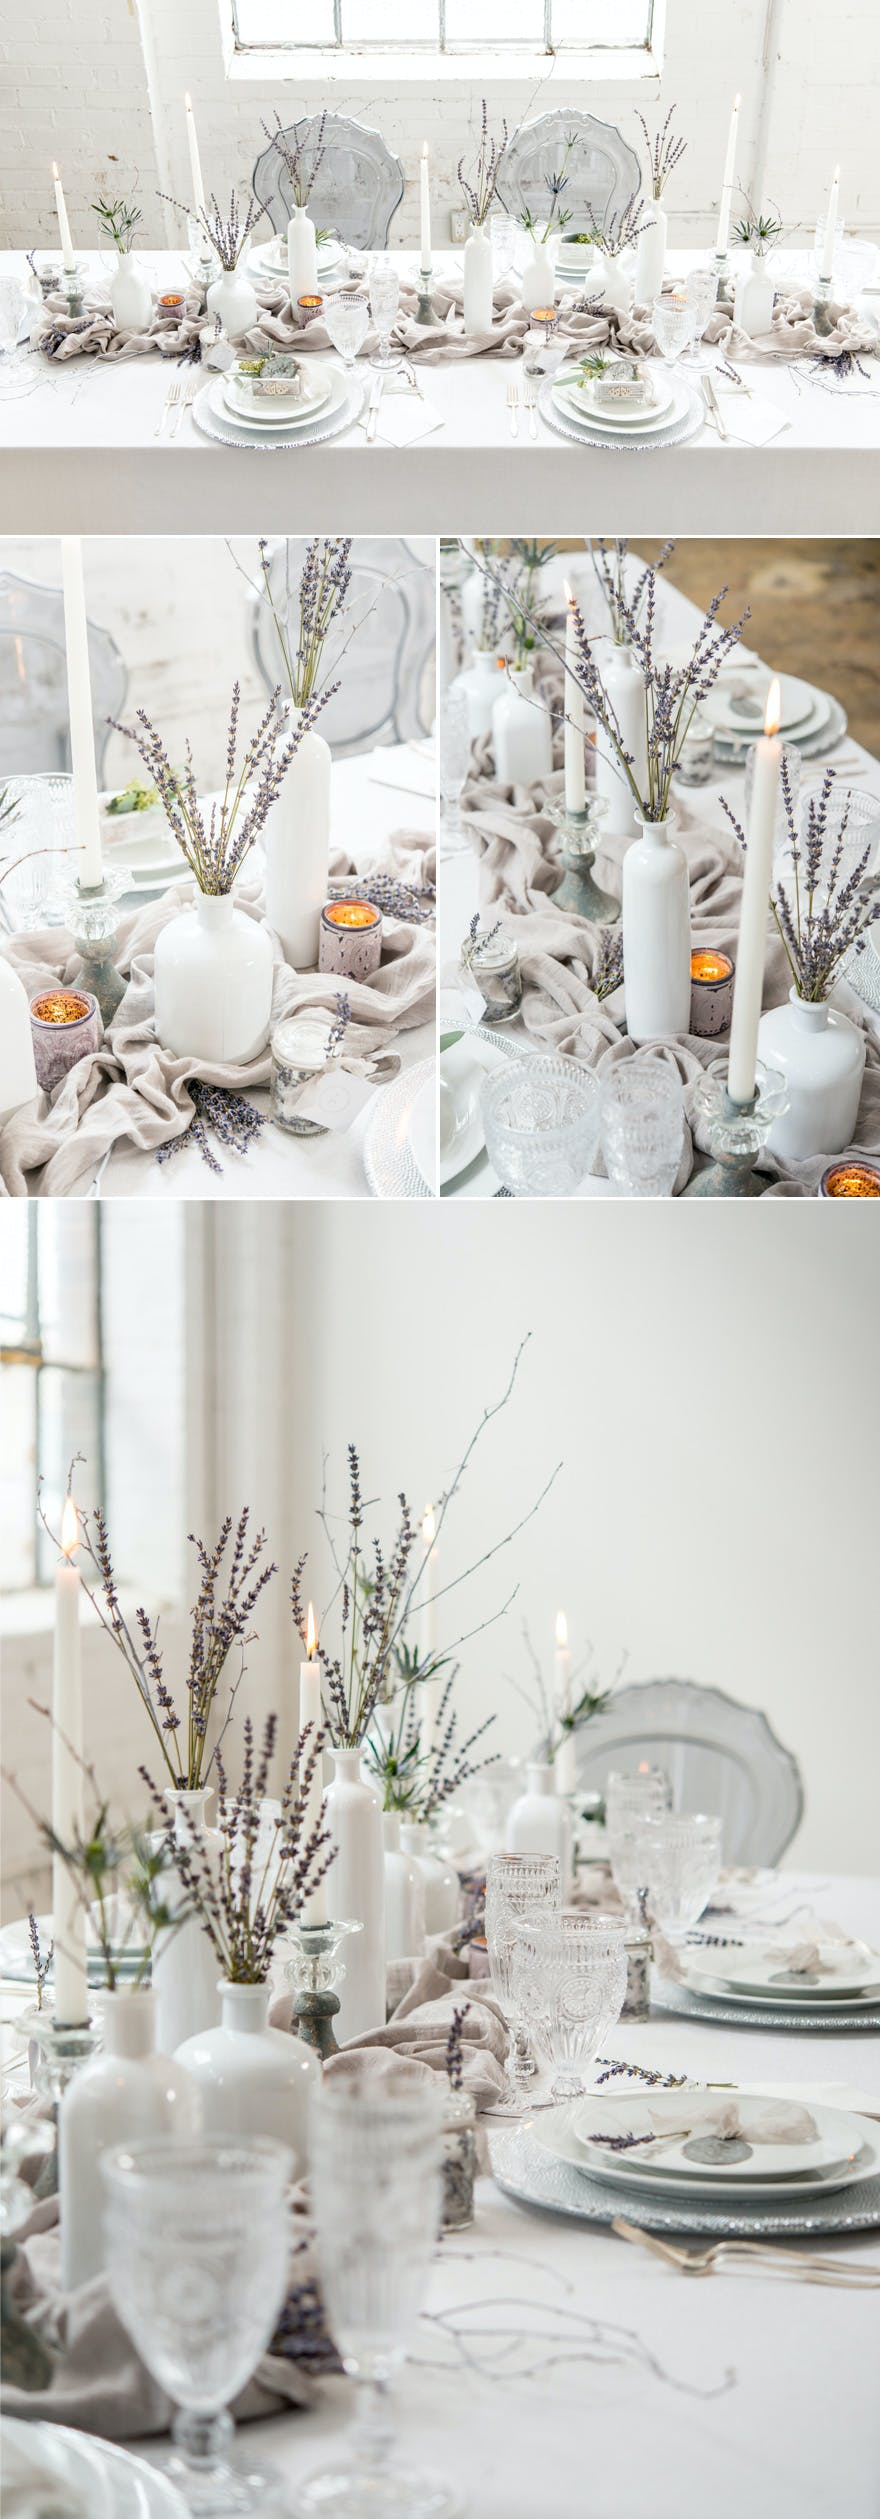 50 Stunning Diy Wedding Centrepieces Ideas And Inspiration